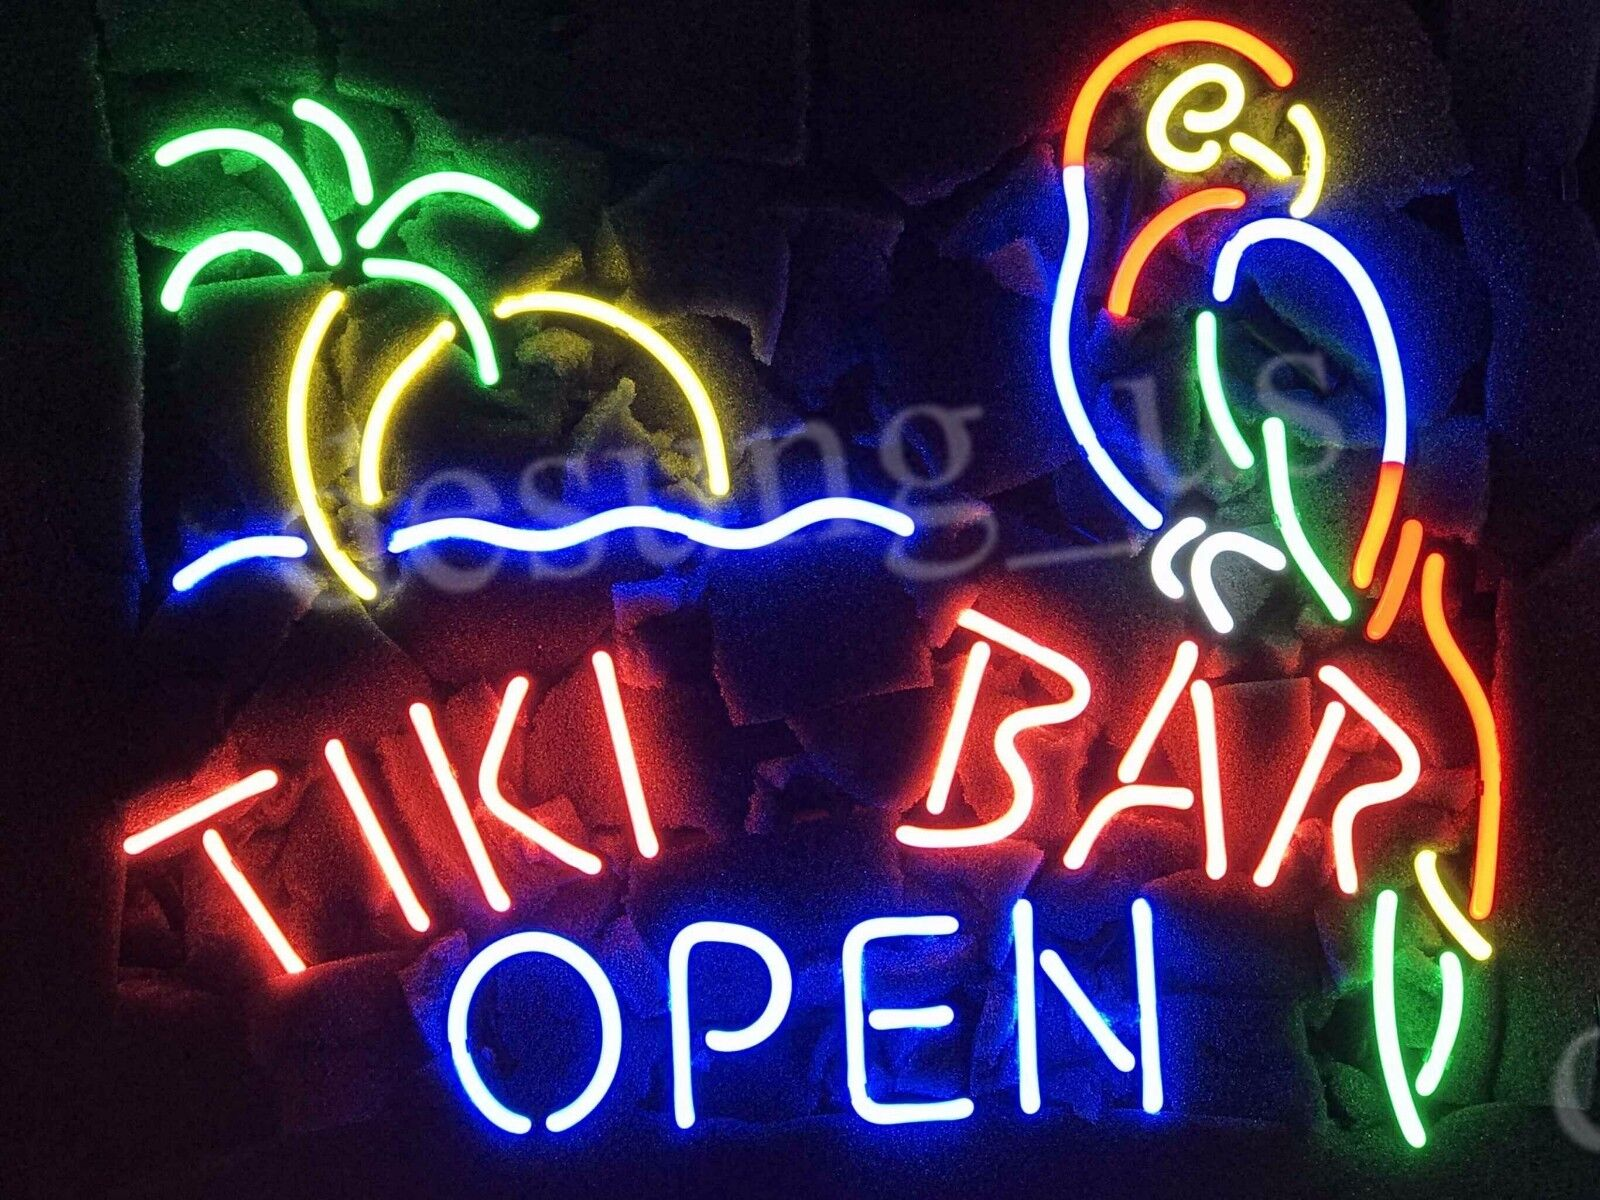 """New Tiki Bar Open Parrot Palm Tree Beer Neon Sign 20""""x16"""""""